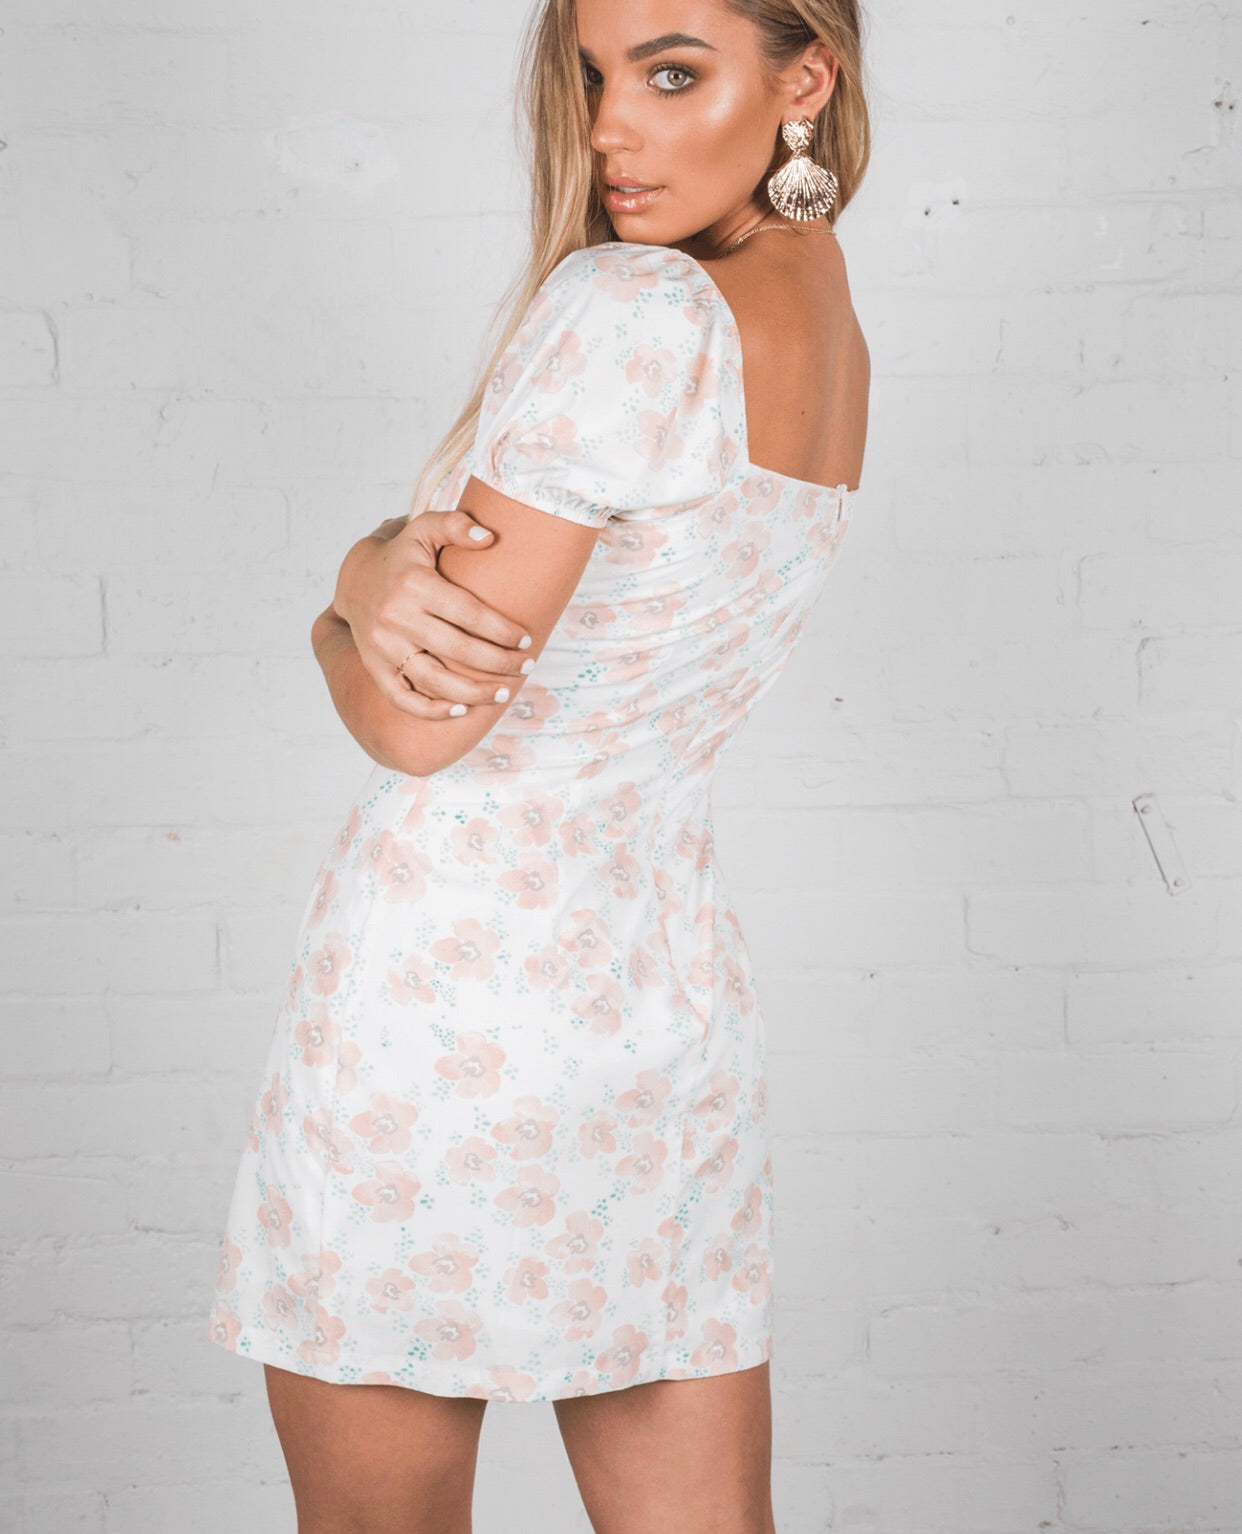 Maggie May Dress - Peach Floral